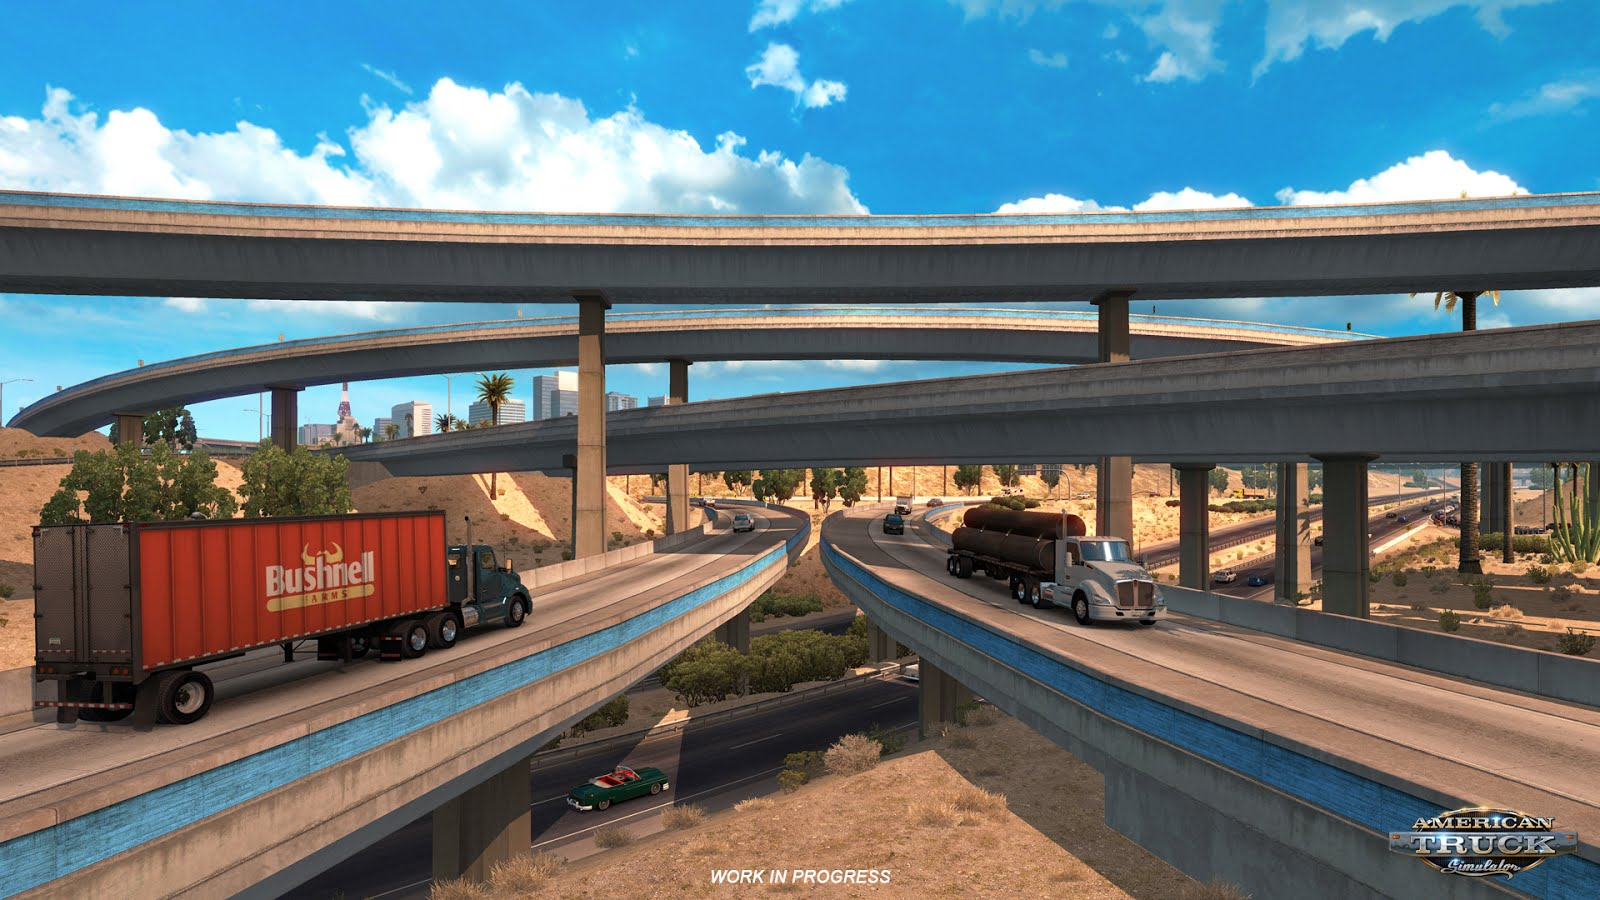 Arizona road network for American Truck Simulator